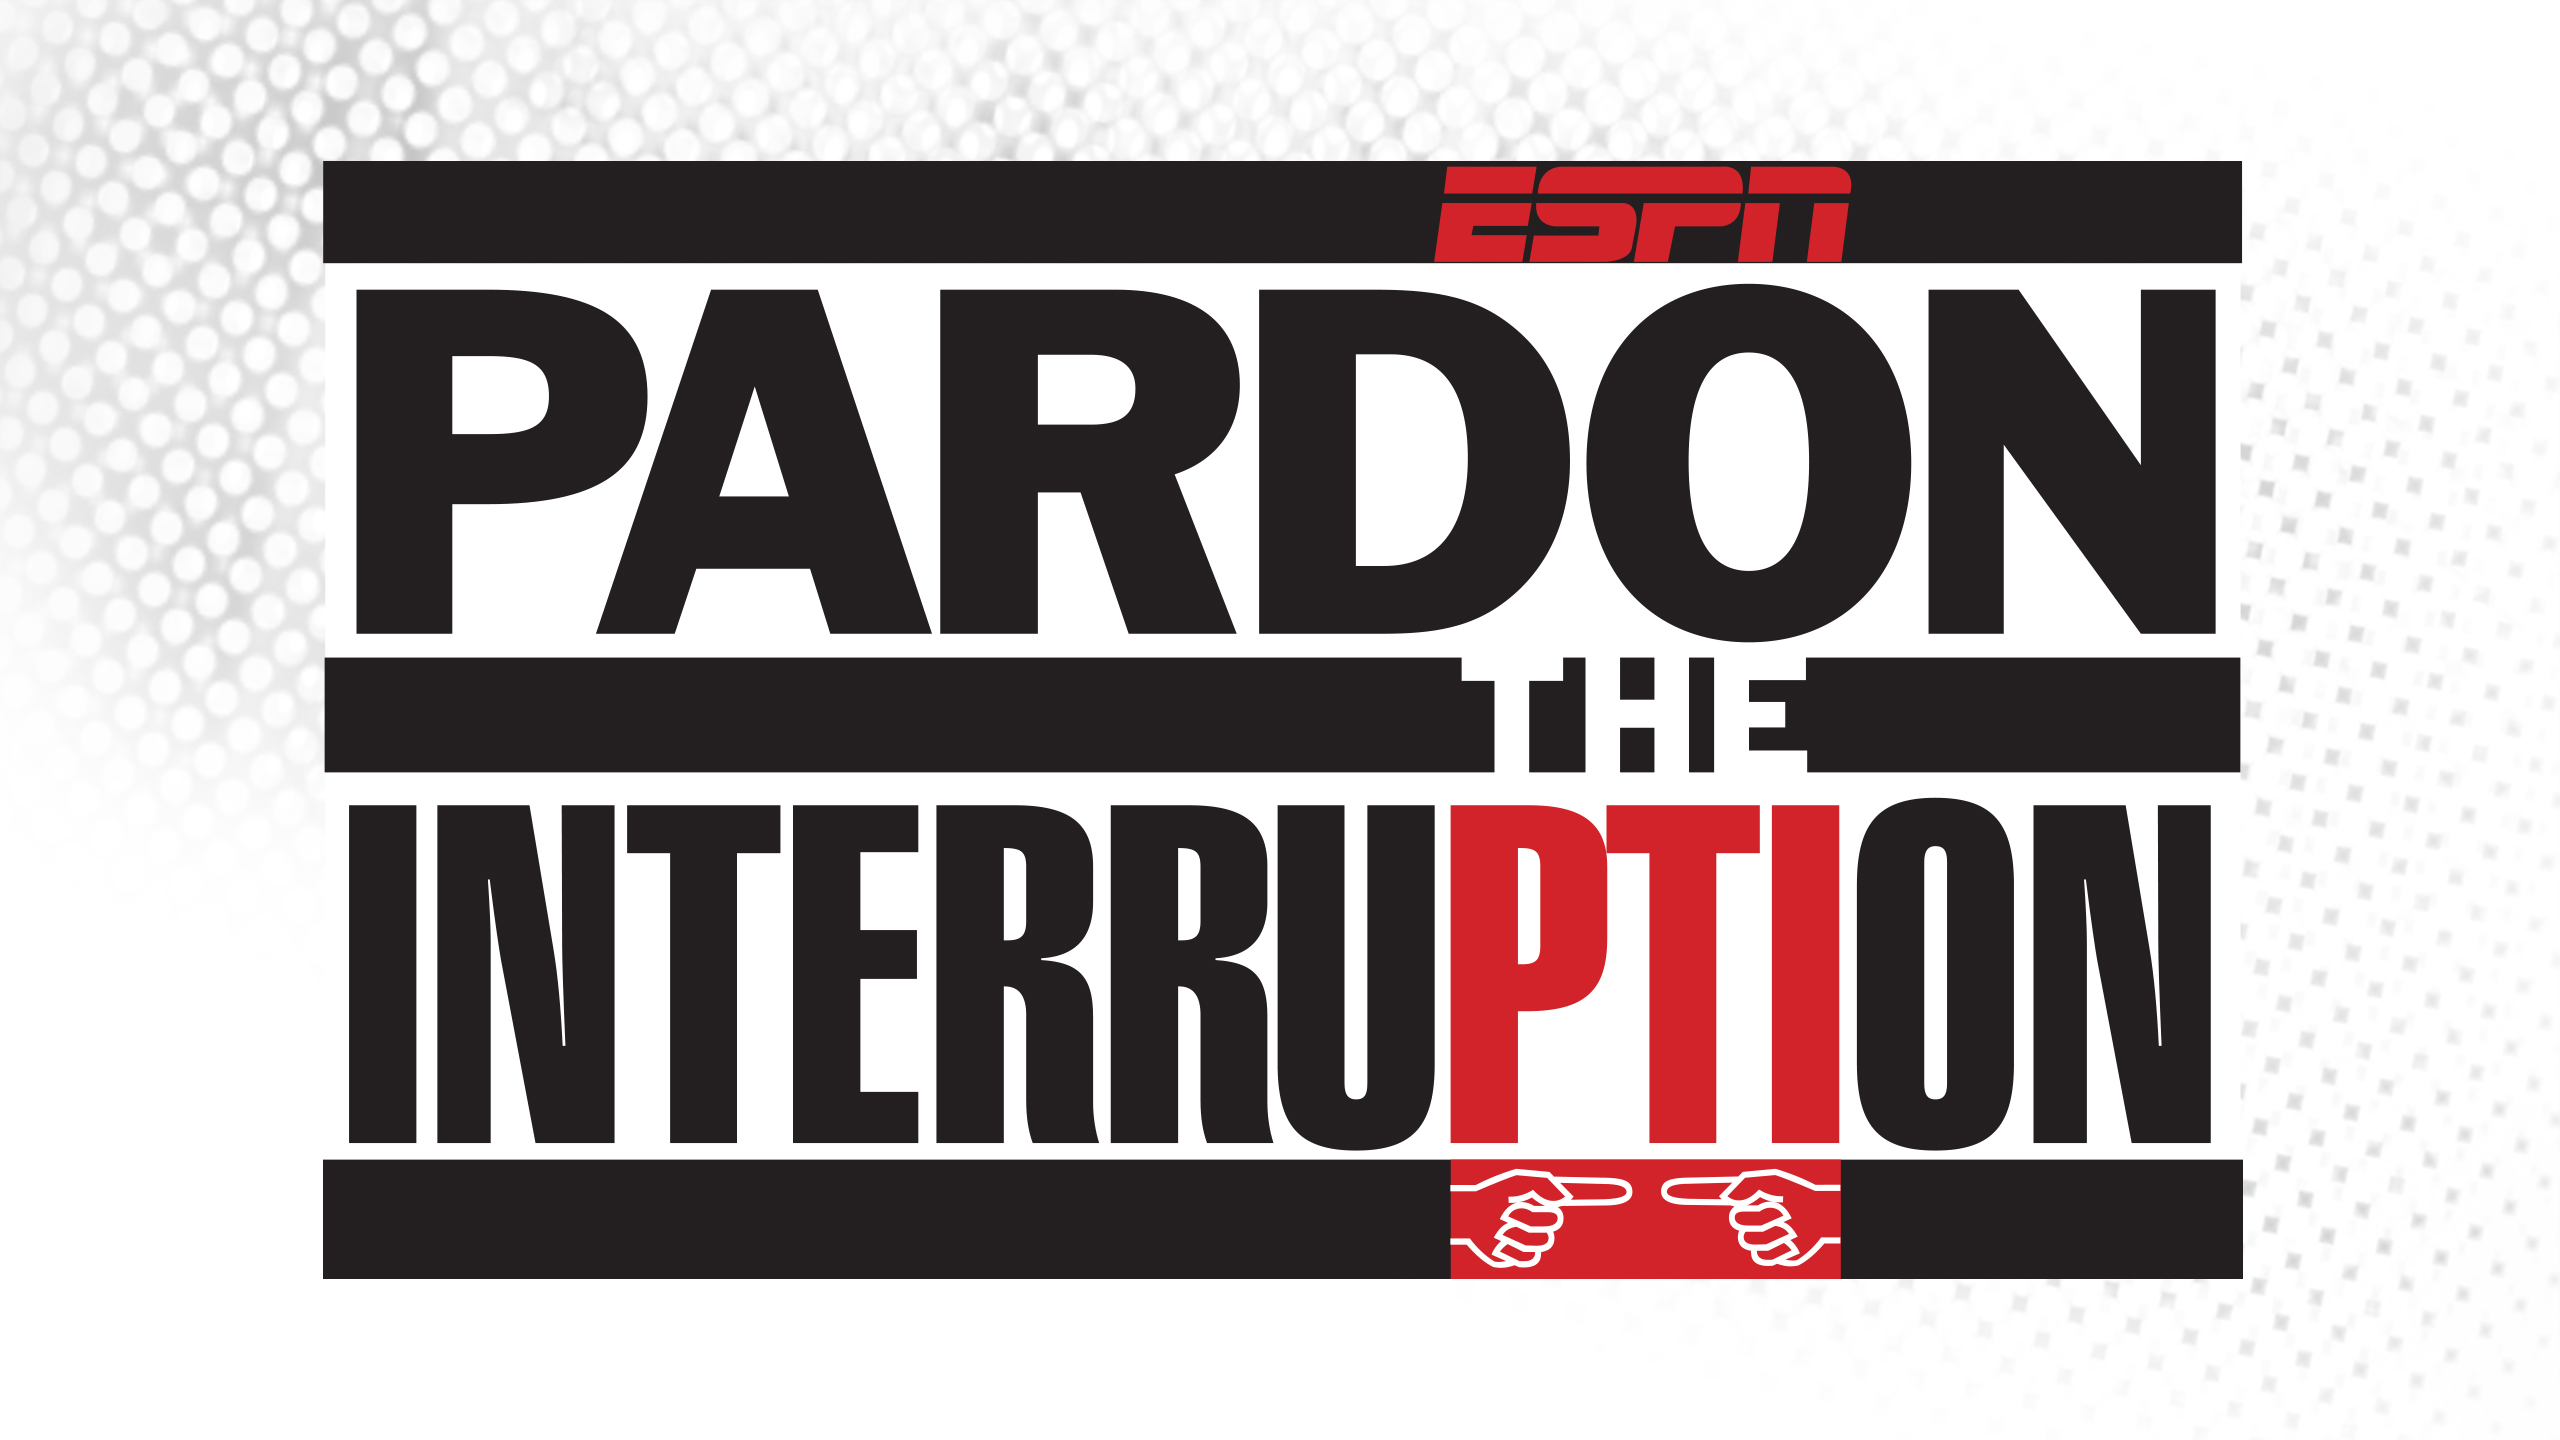 Thu, 2/21 - Pardon The Interruption